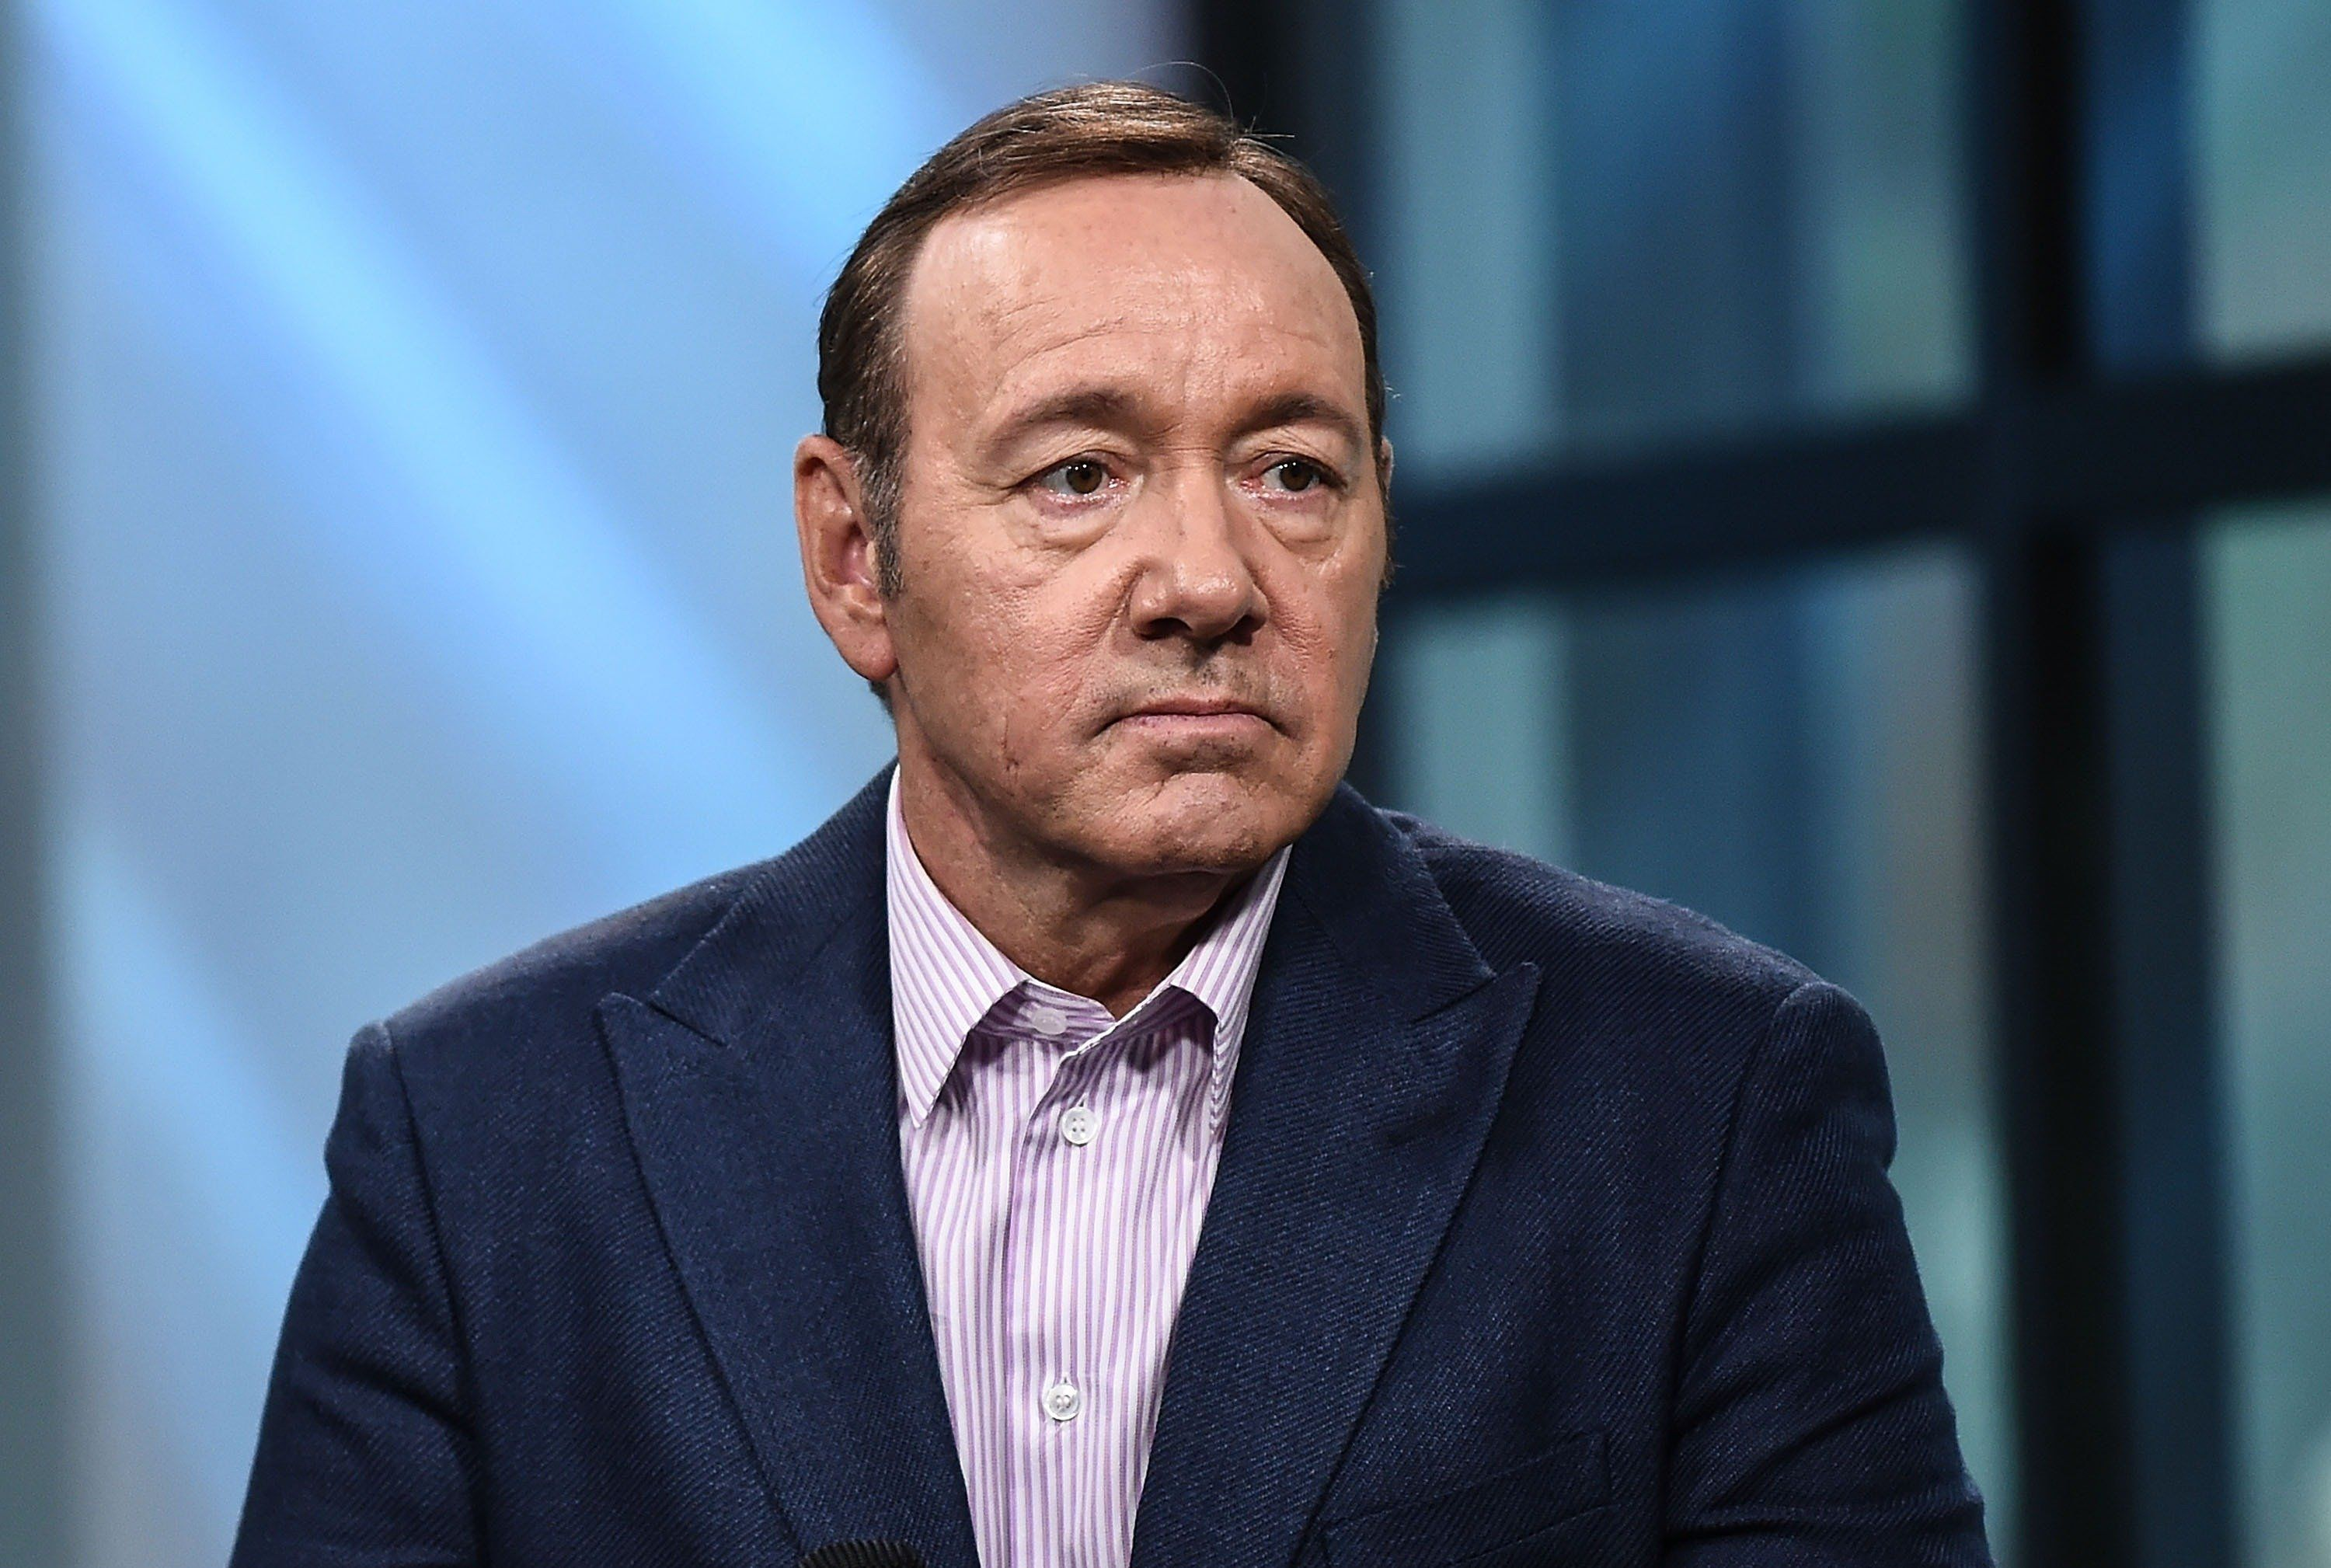 20 People Accuse Kevin Spacey Of 'Inappropriate Behavior' While Working At London